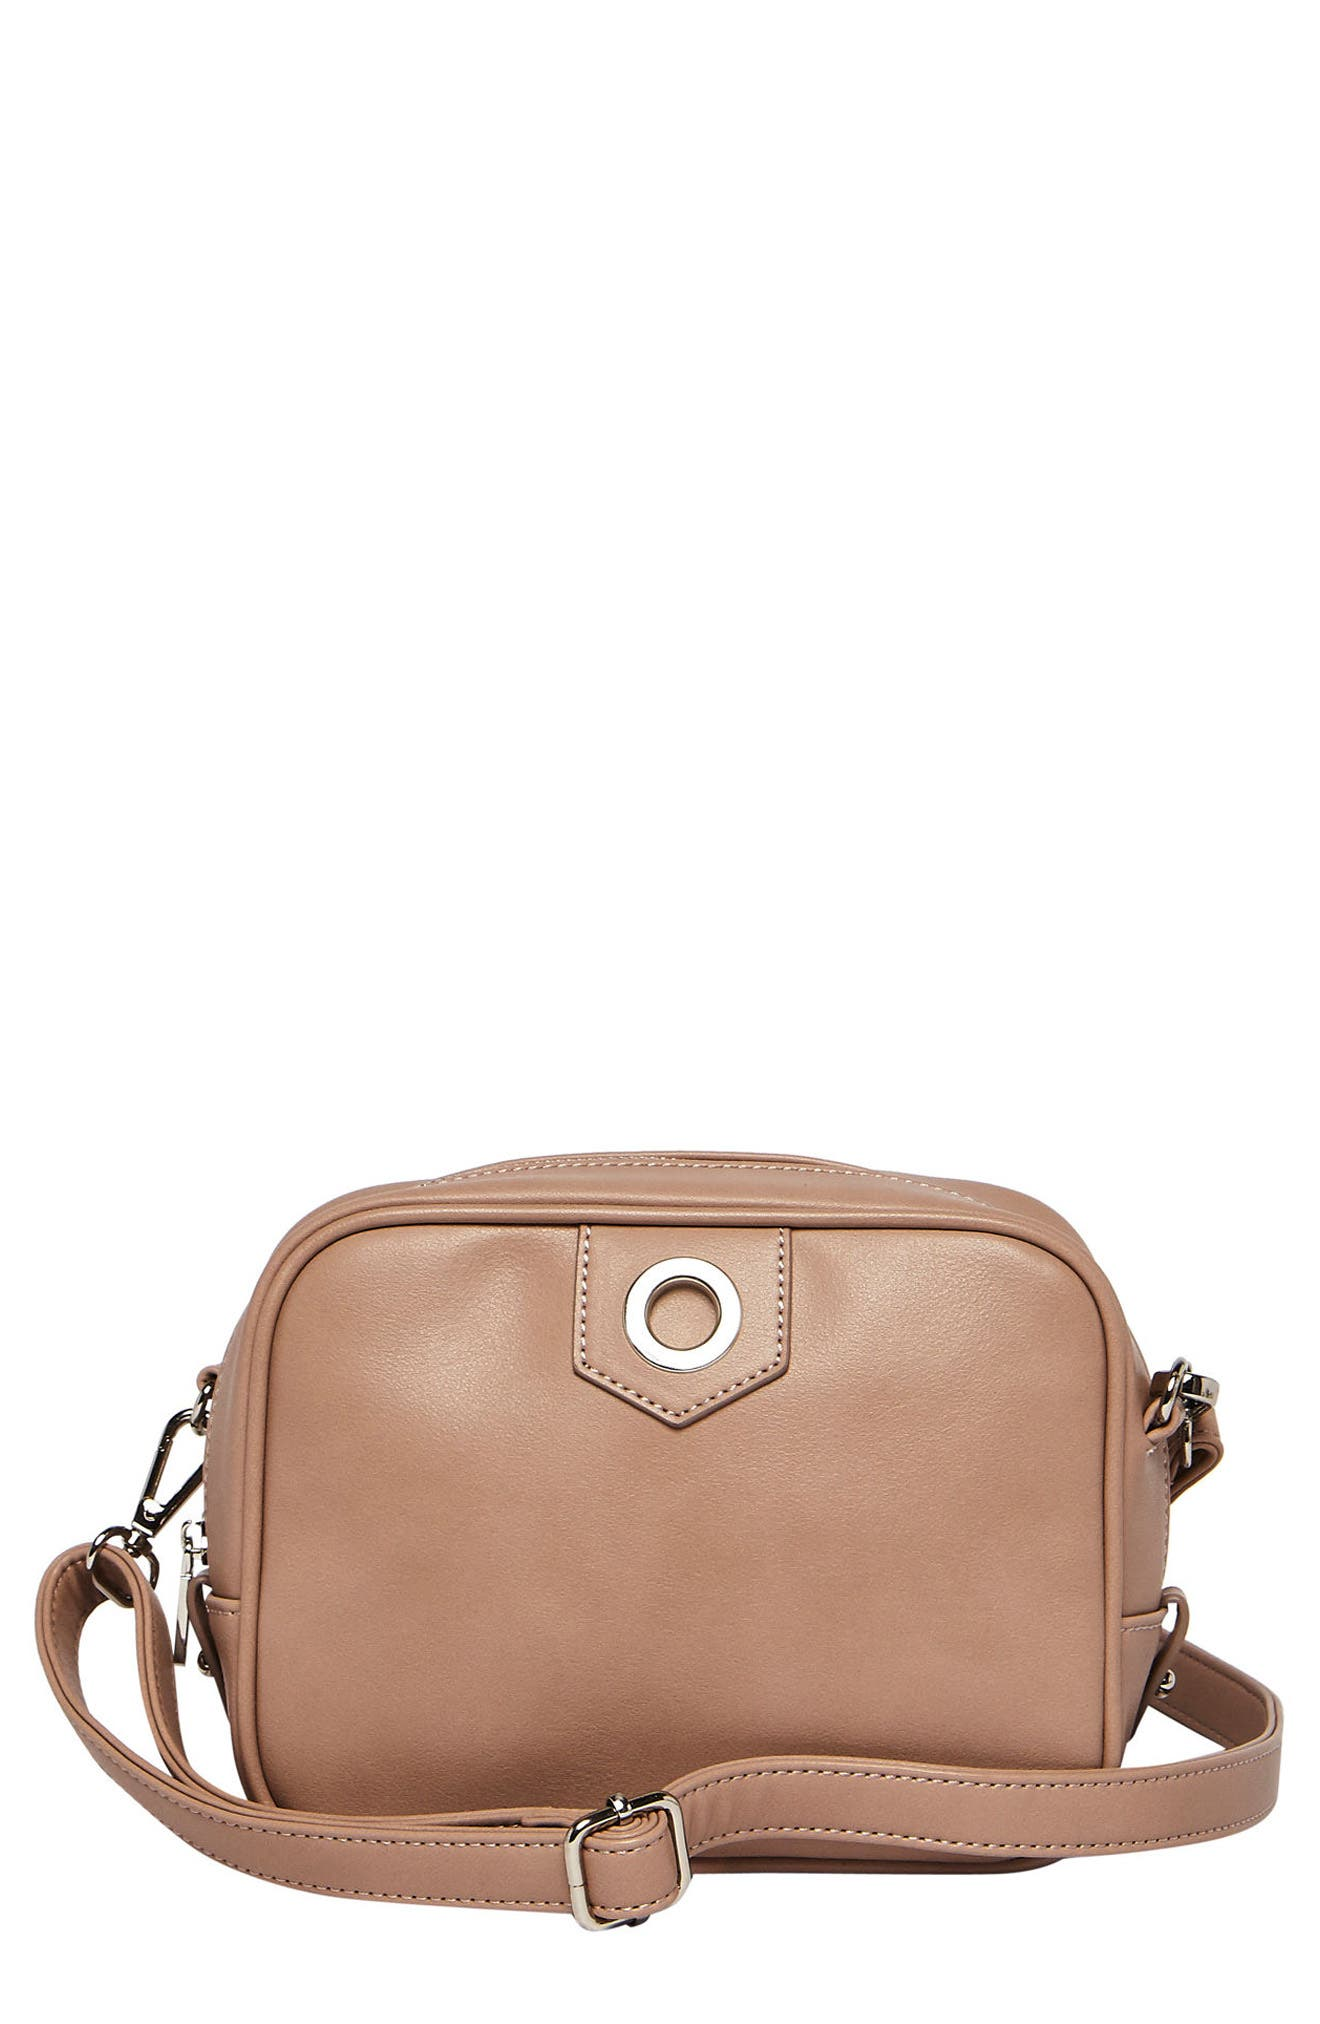 Dakota Vegan Leather Crossbody Bag,                             Main thumbnail 1, color,